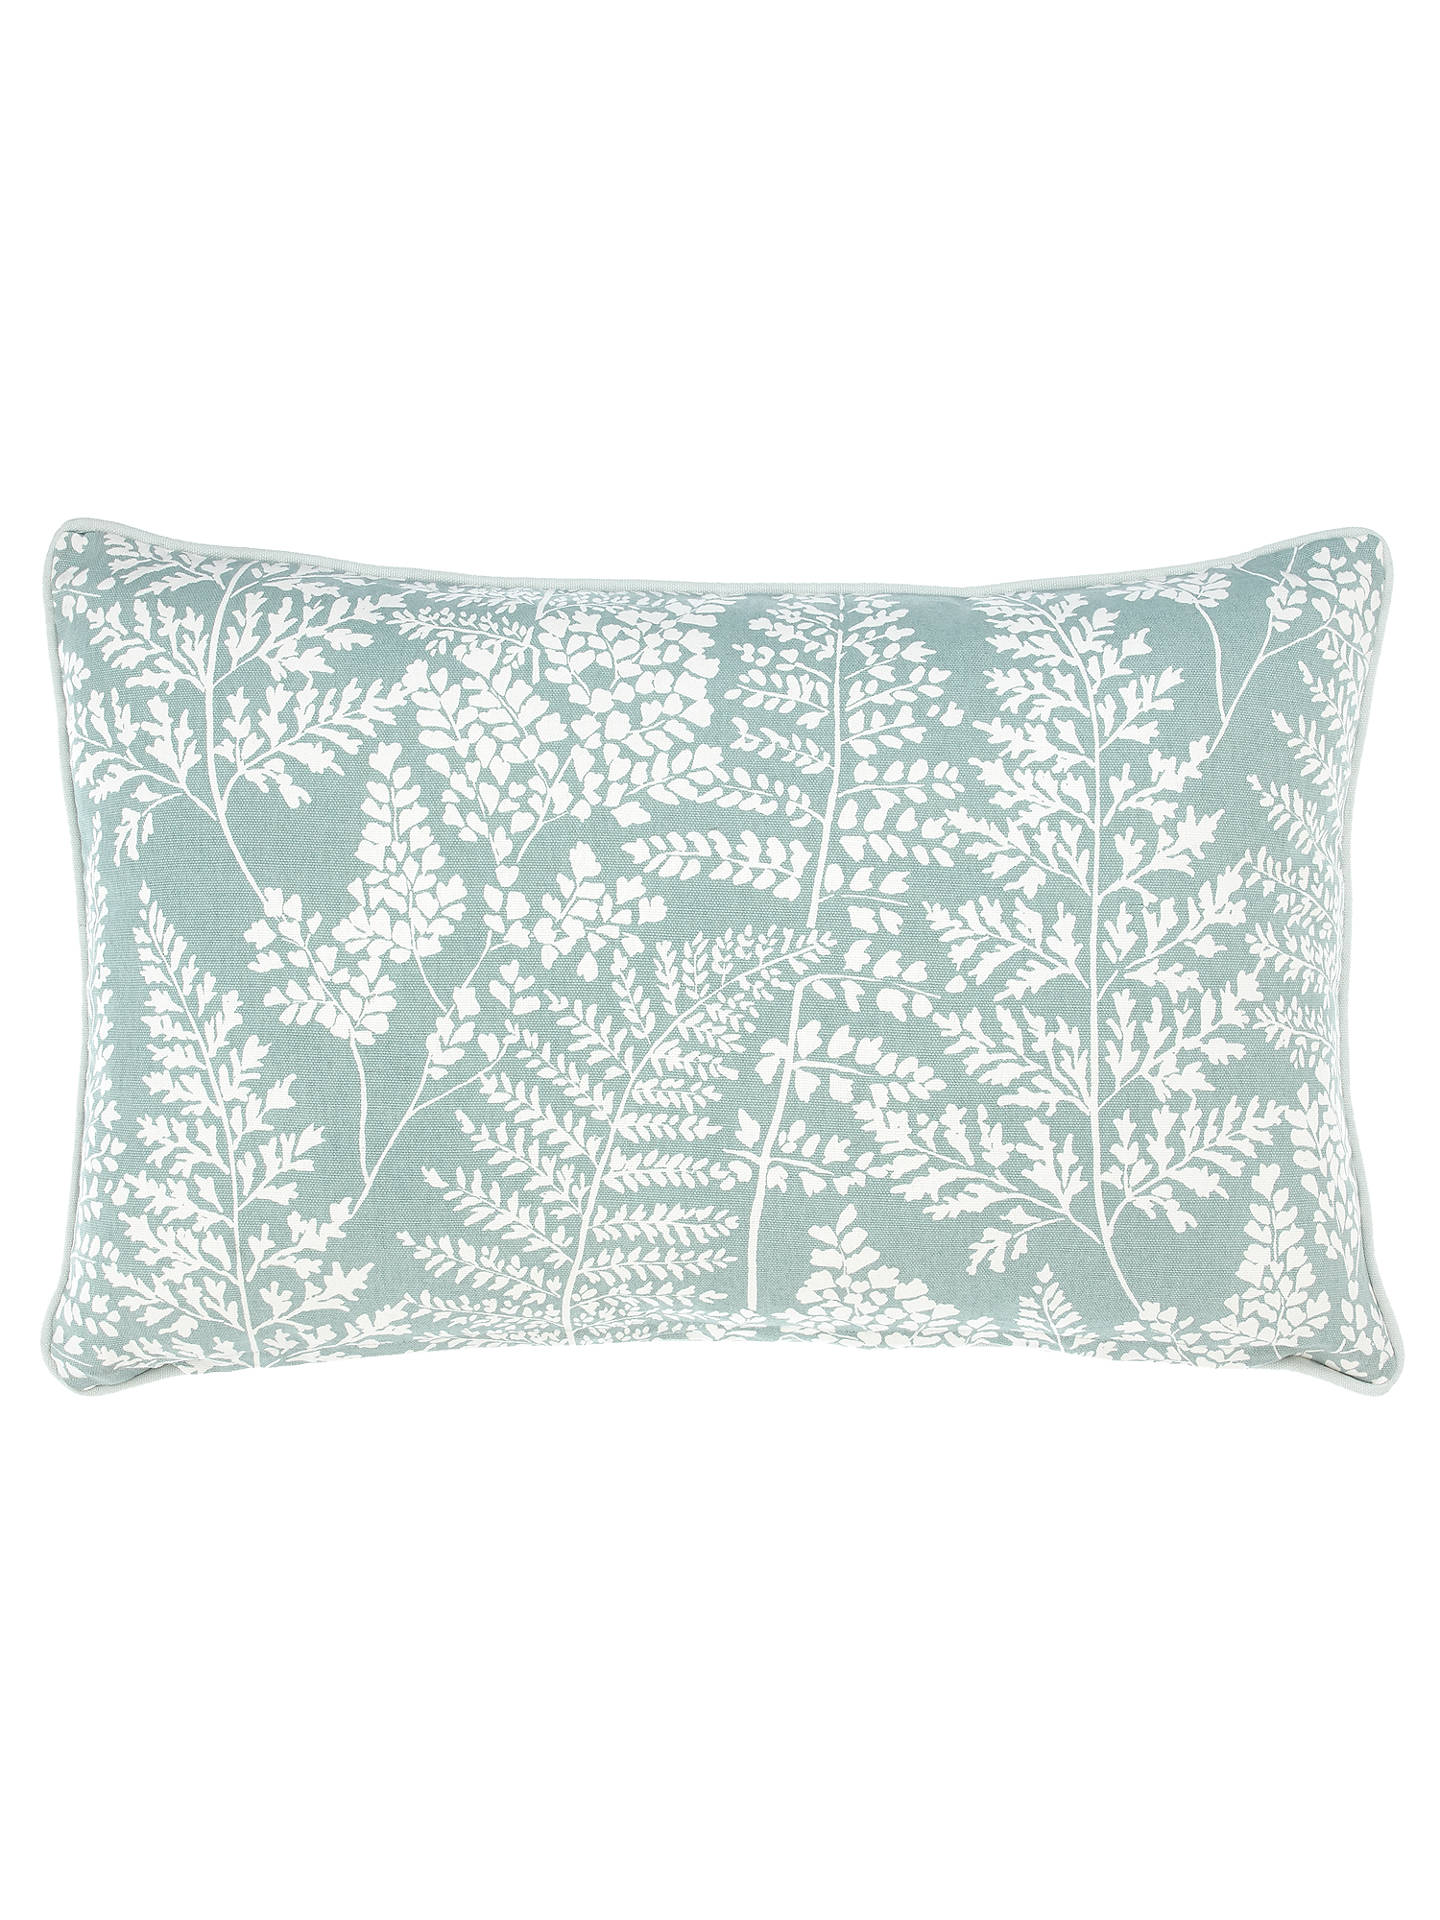 BuyJohn Lewis & Partners Fern Rectangular Showerproof Outdoor Cushion, Green Online at johnlewis.com